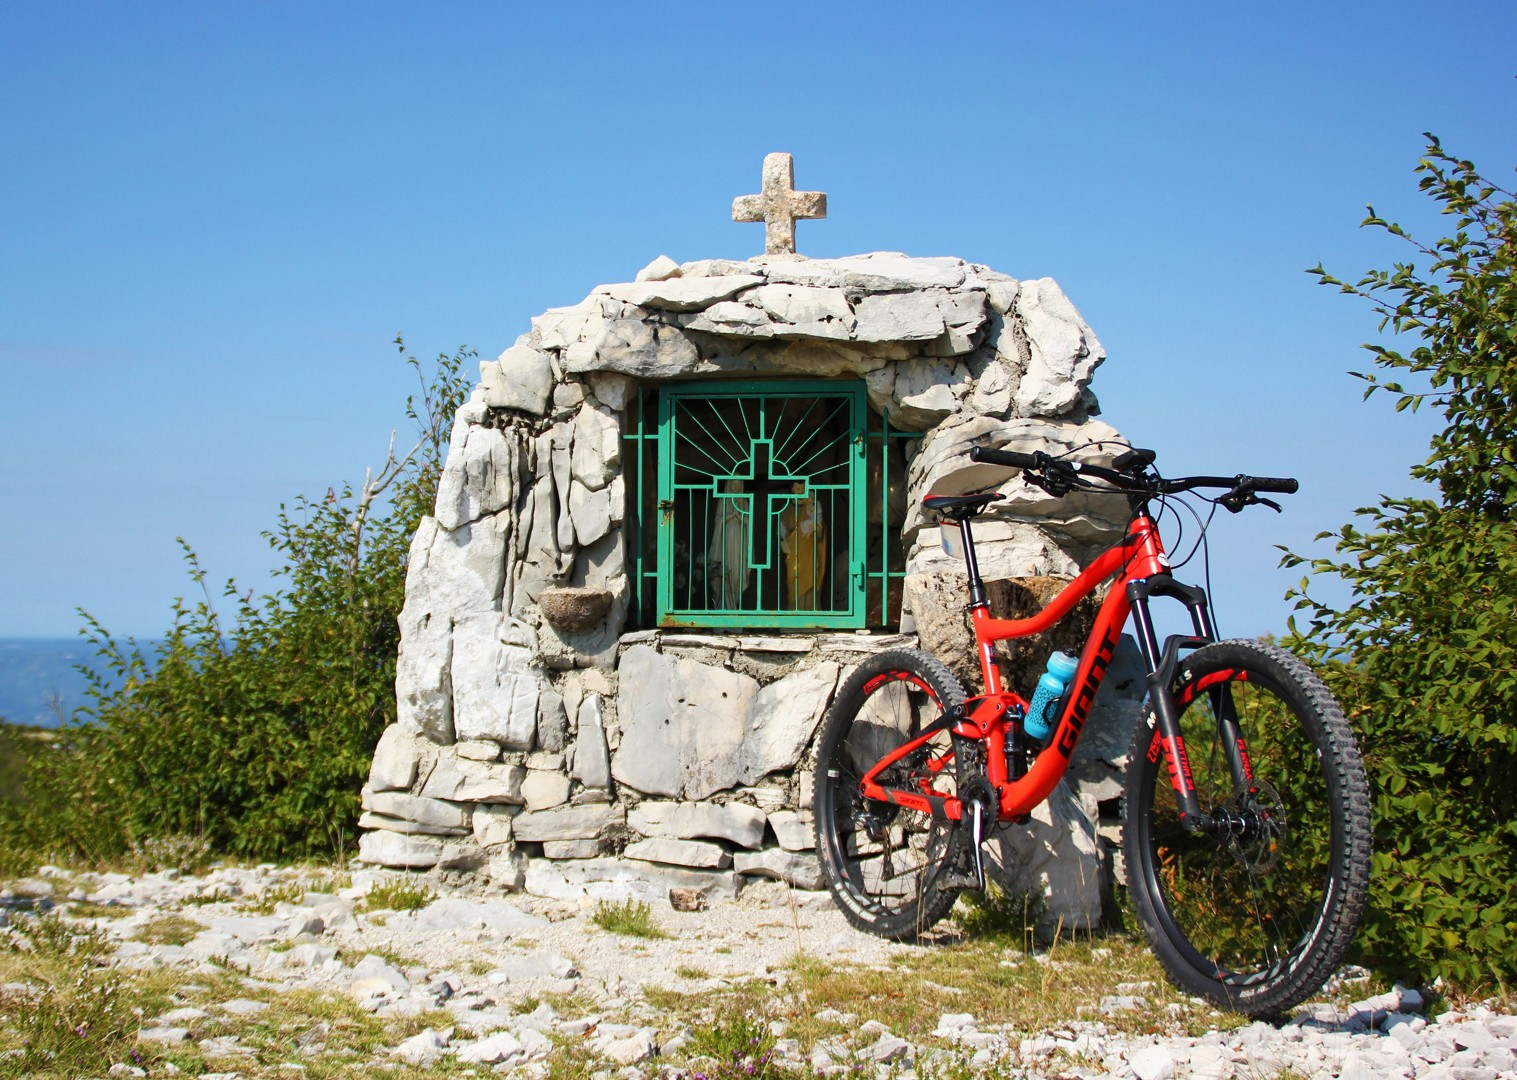 mtb-tour-in-croatia-rugged-trails-of-the-skitaca-peninsula.JPG - NEW! Croatia - Terra Magica - Mountain Biking